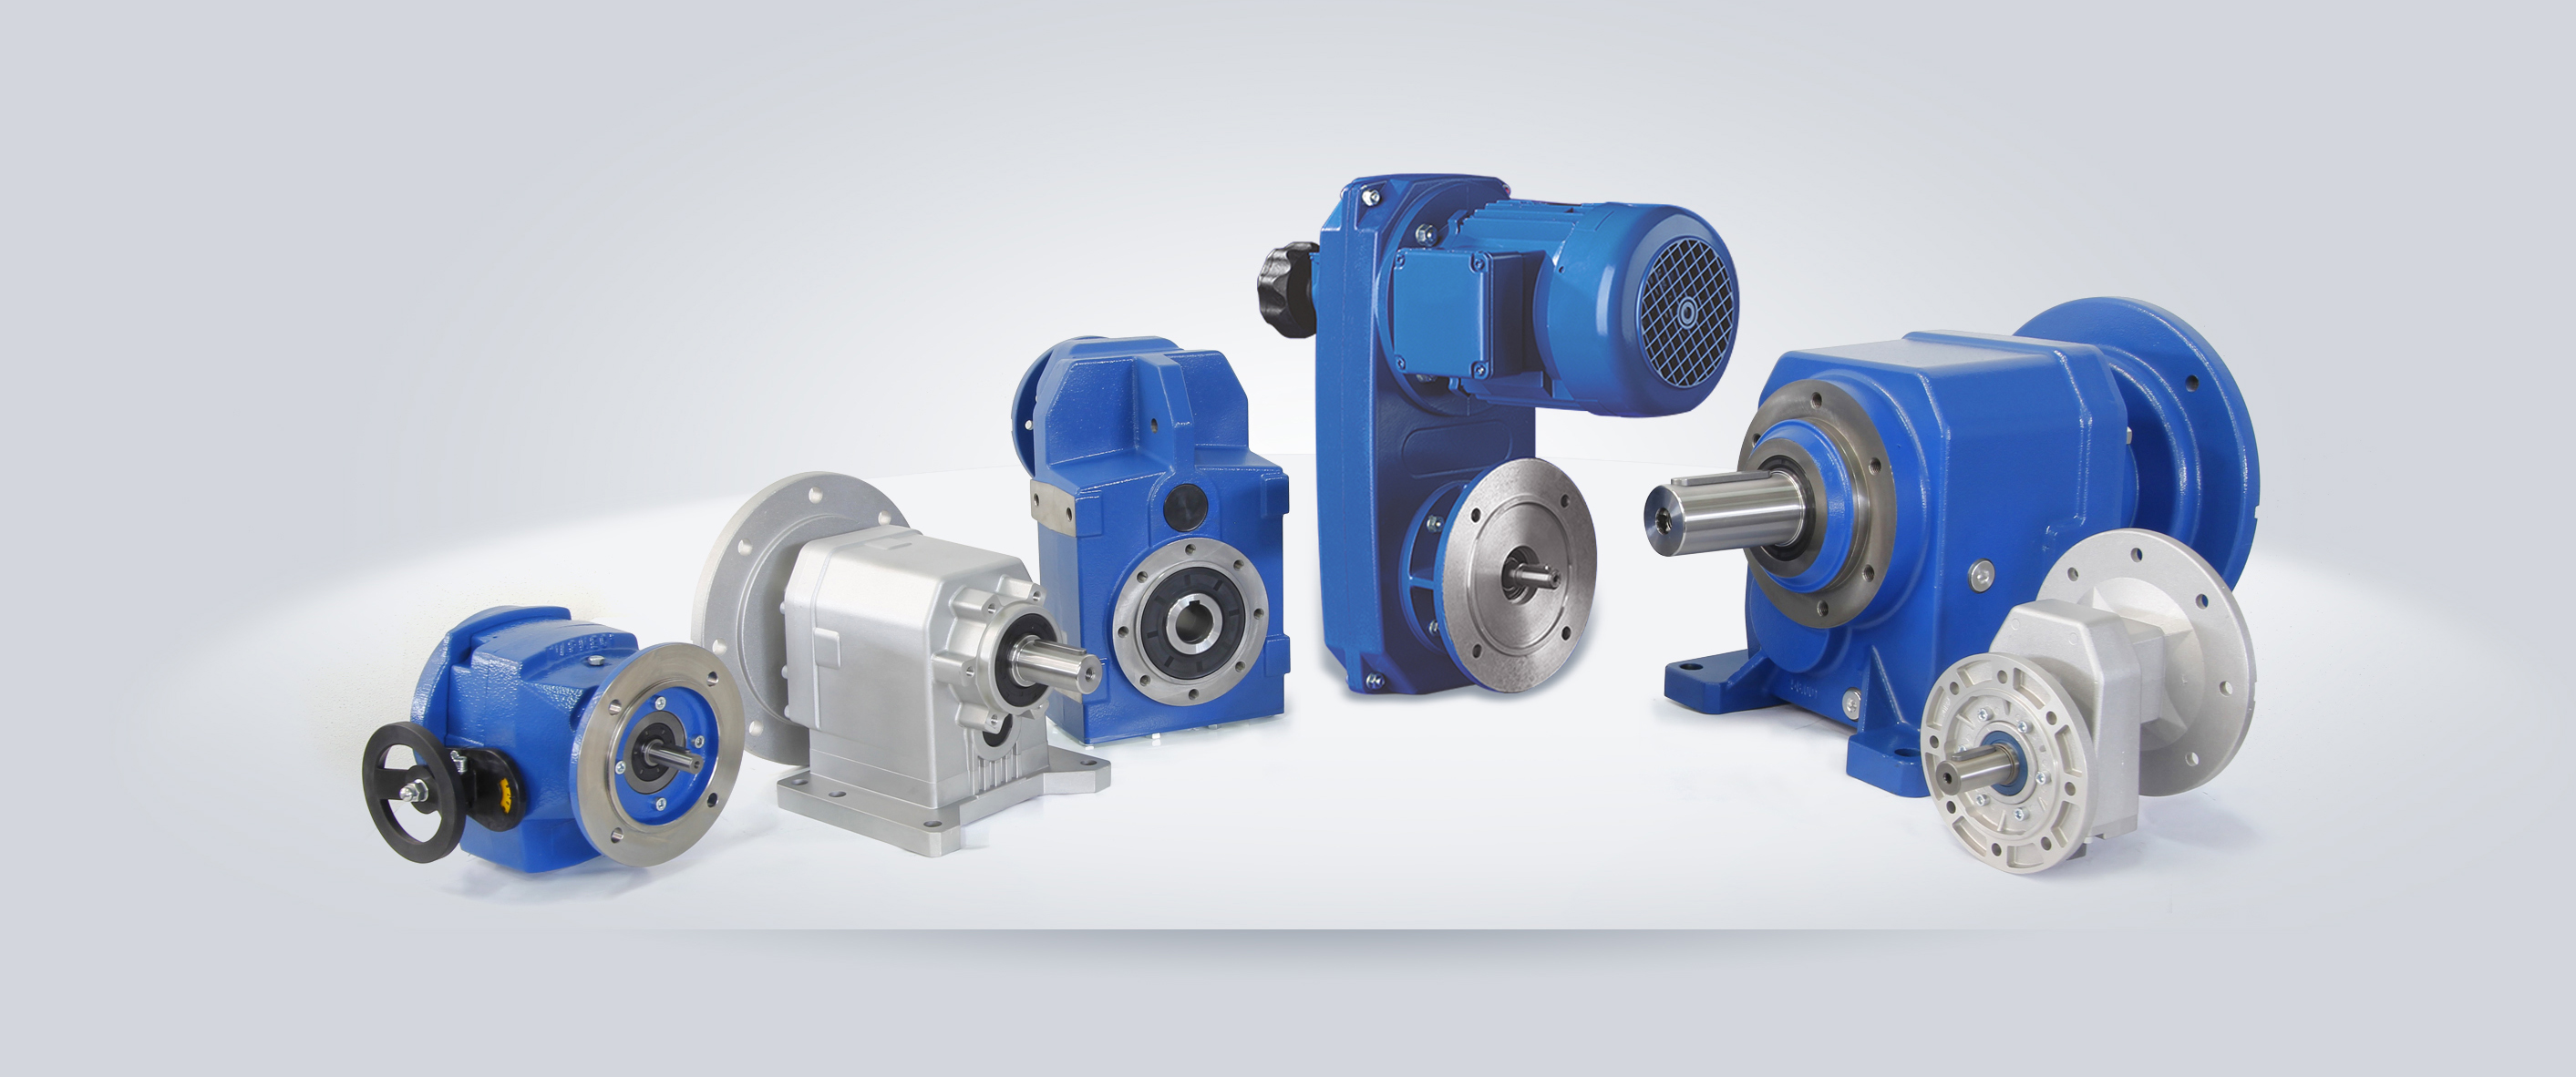 VARMEC variable speed drives, gear reducers and motor reducers